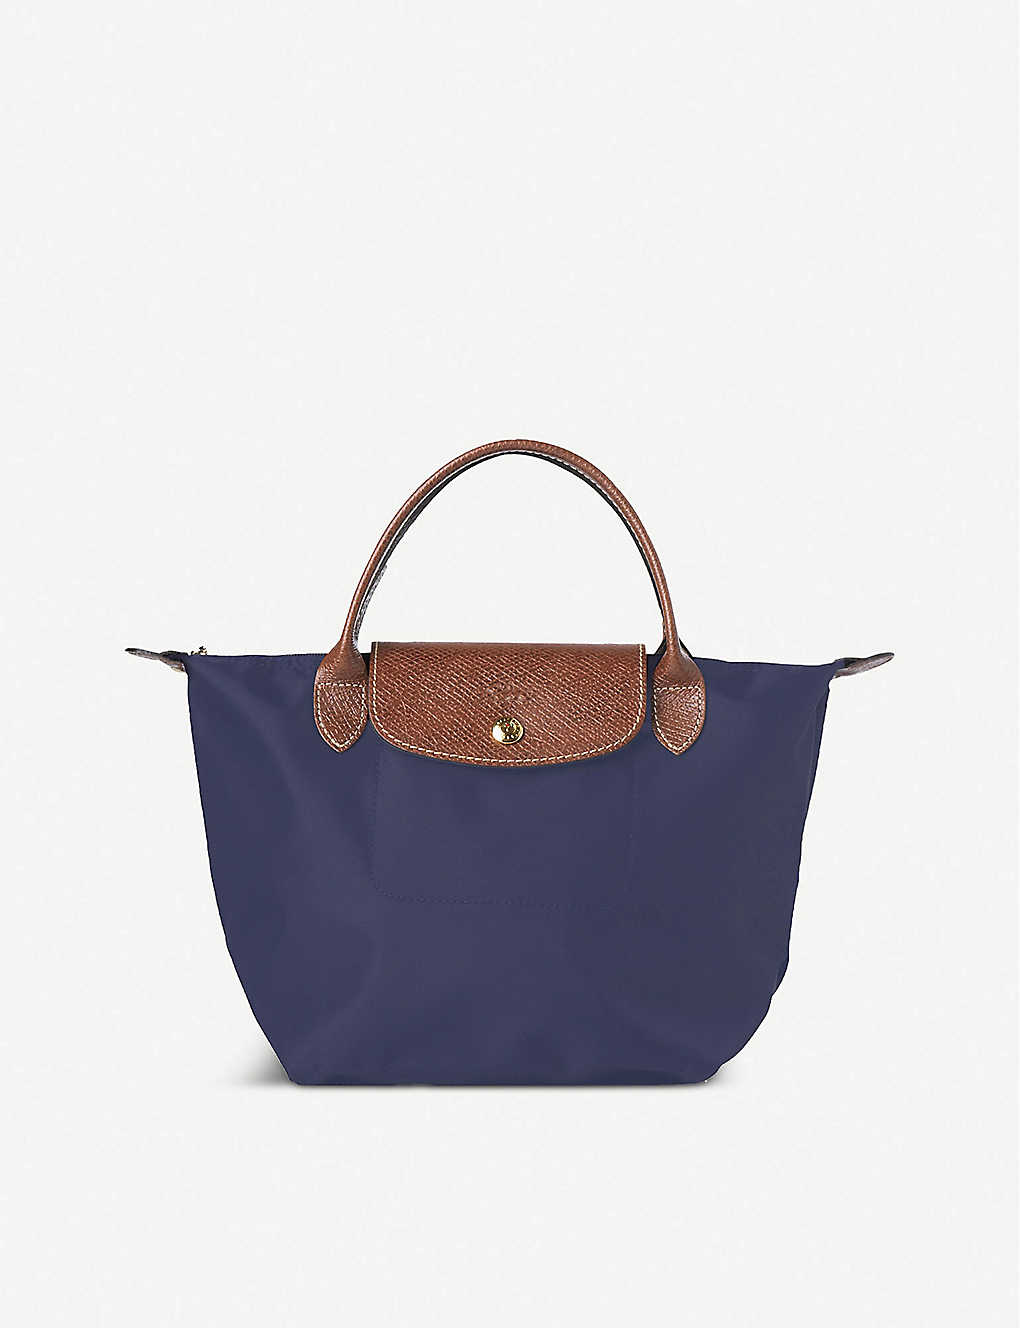 Le Pliage small handbag - NAVY